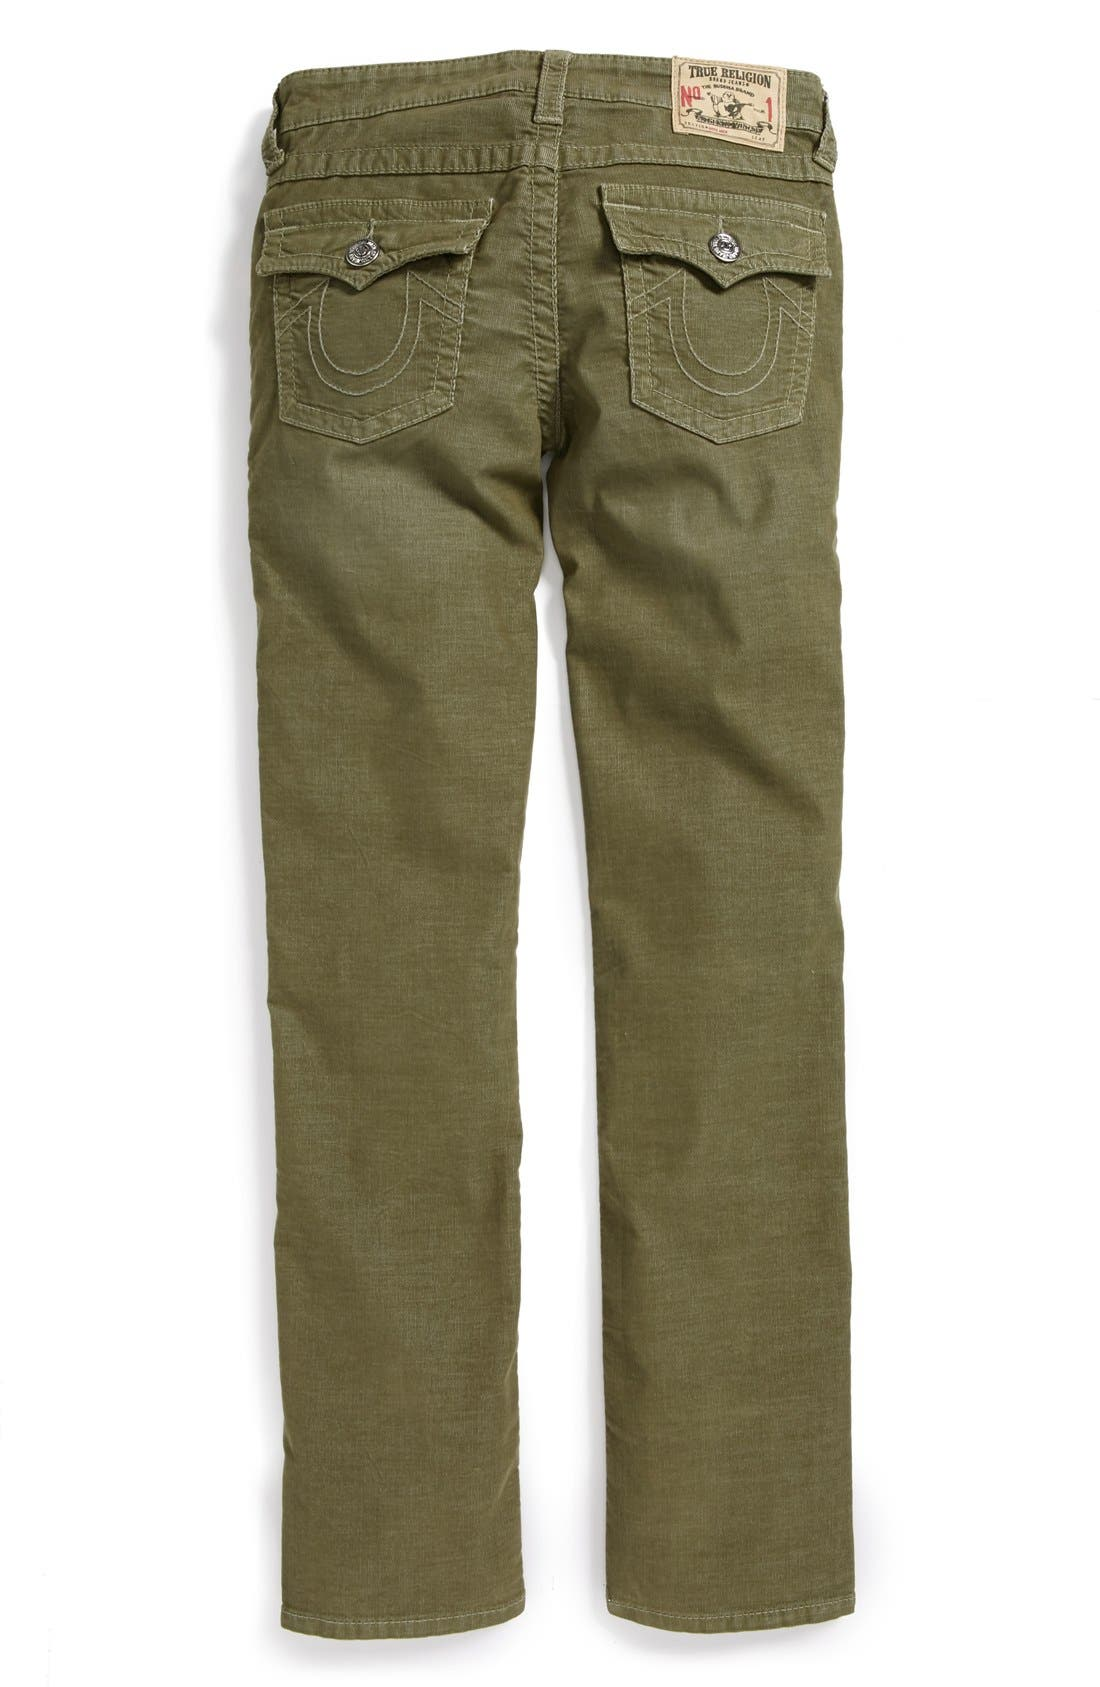 Alternate Image 1 Selected - True Religion Brand Jeans 'Jack' Straight Leg Corduroy Jeans (Big Boys)